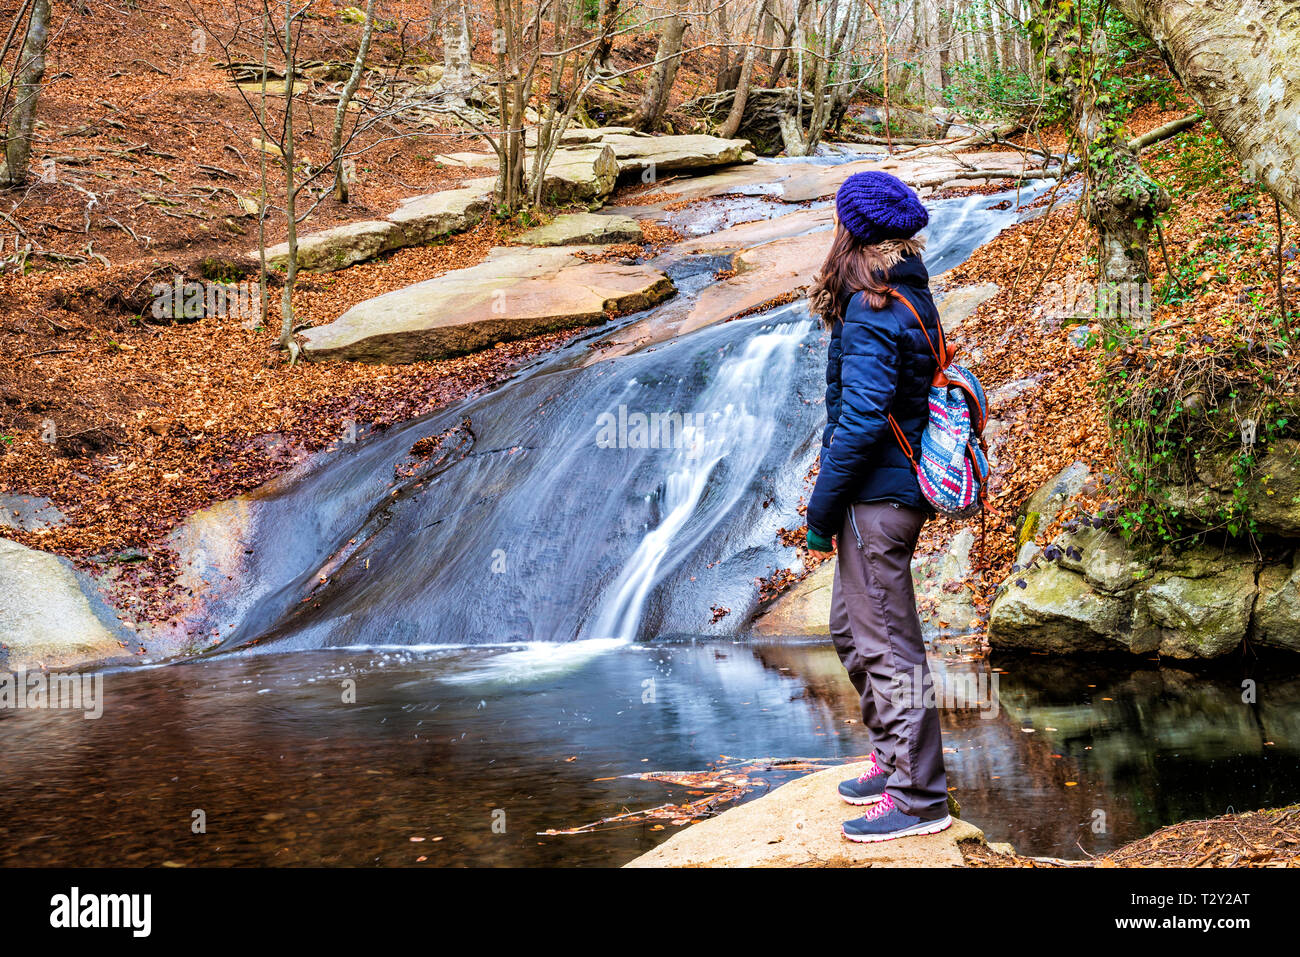 Woman standing watching falls in river - Stock Image